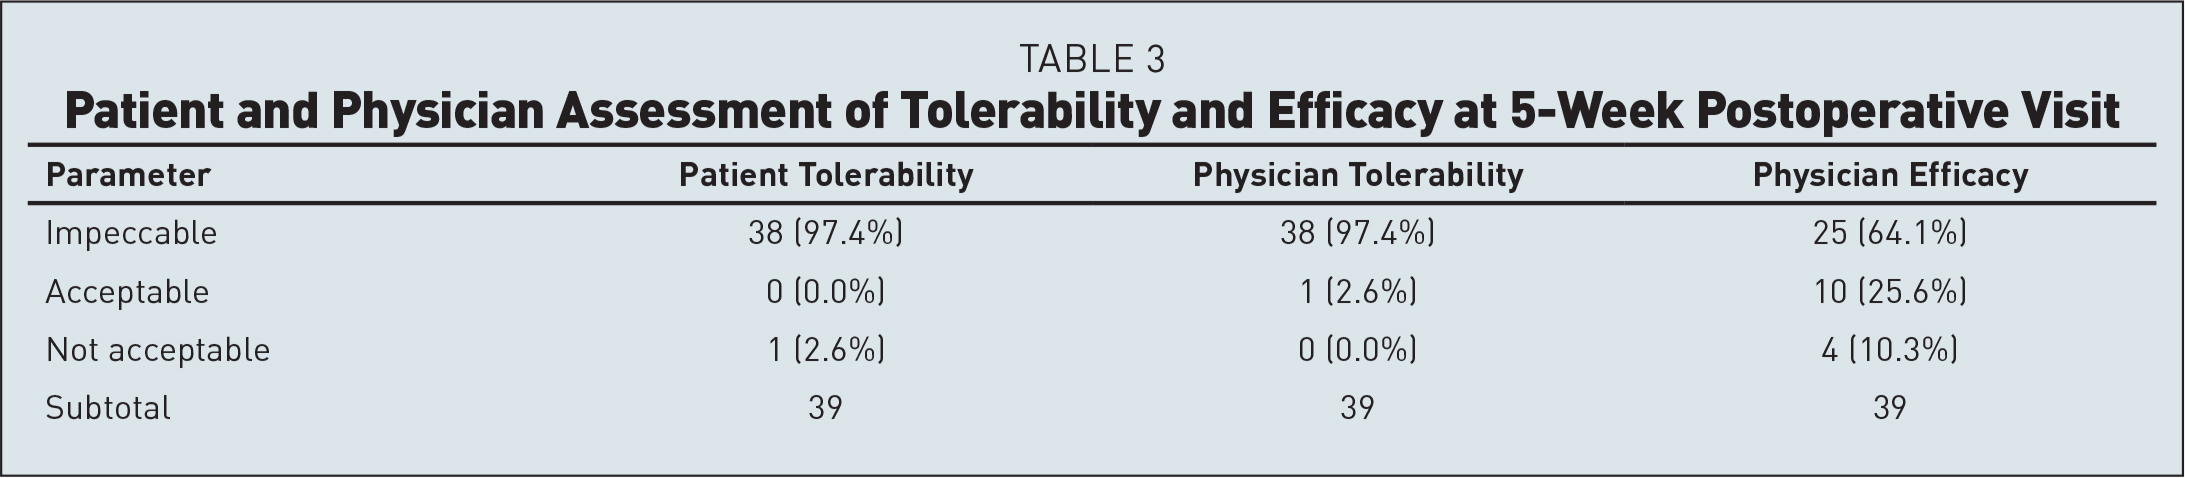 Patient and Physician Assessment of Tolerability and Efficacy at 5-Week Postoperative Visit